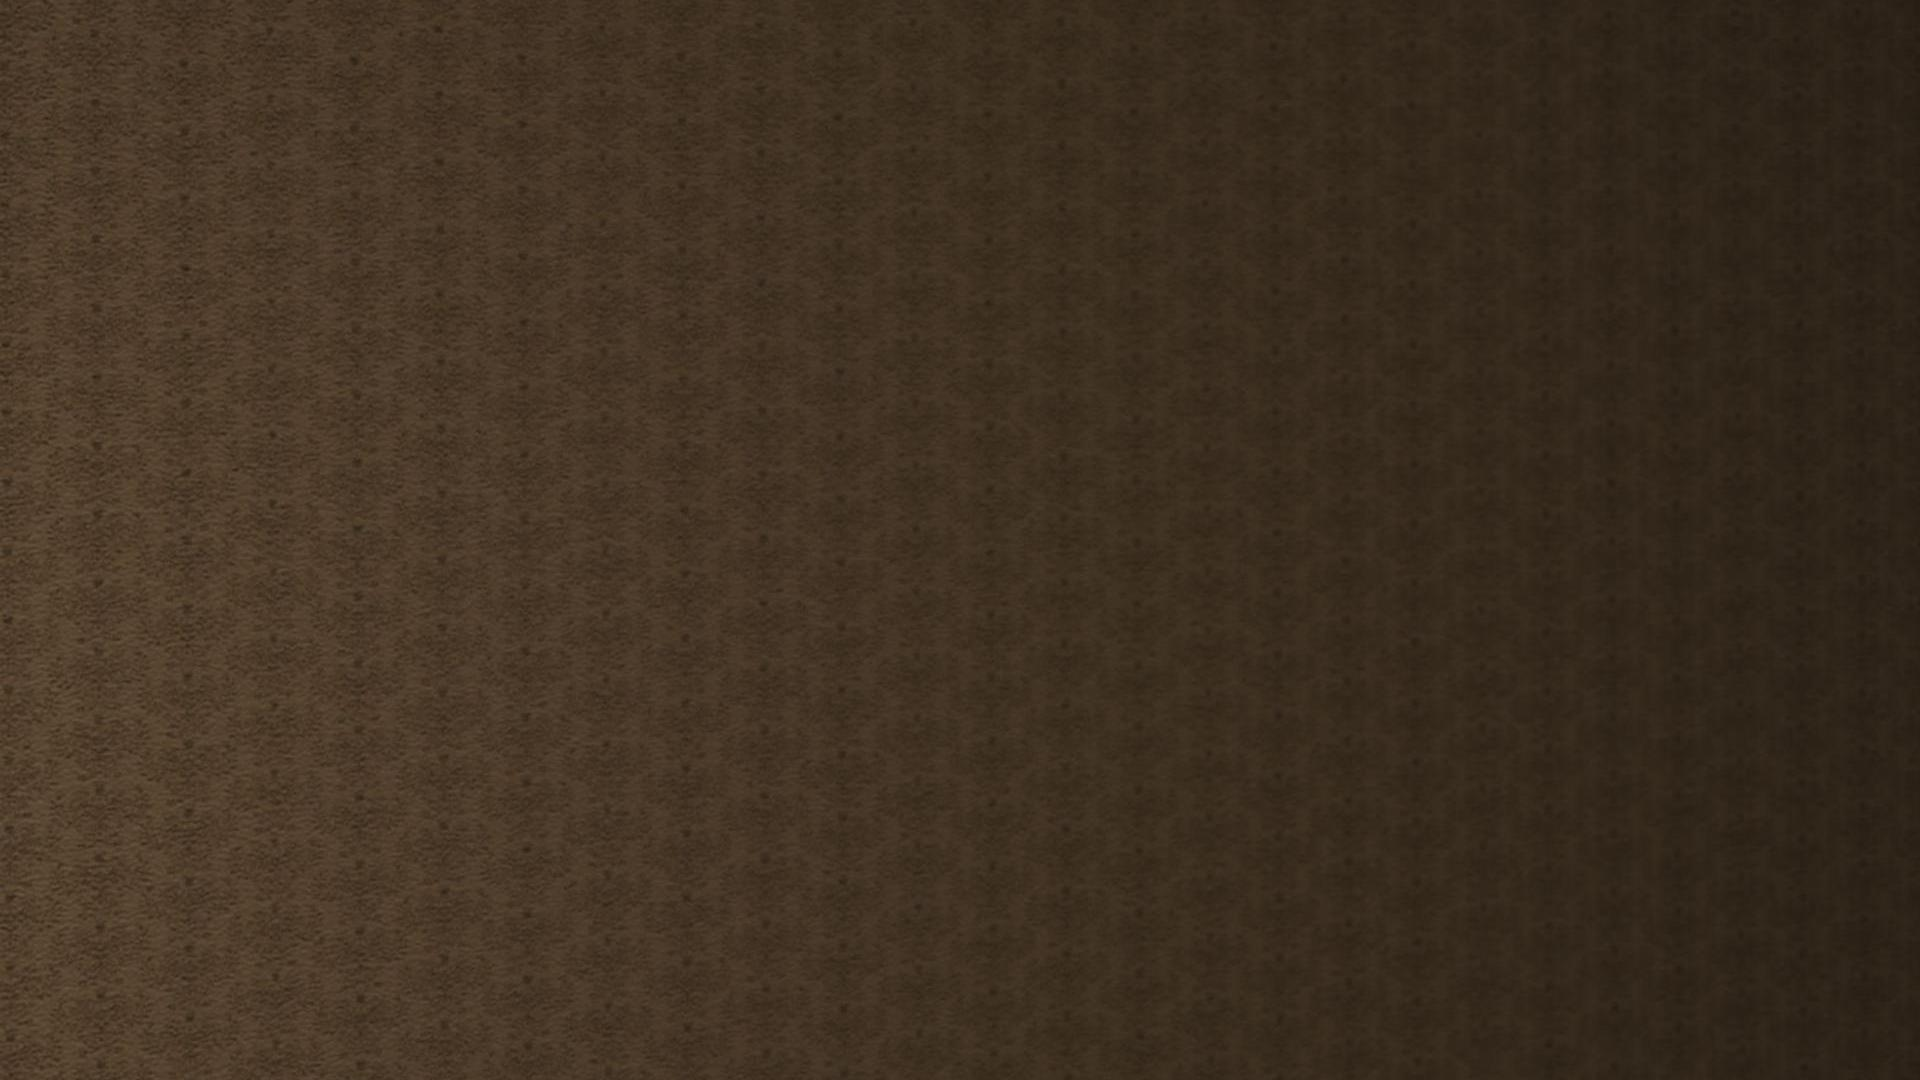 135kB 1920x1080 Brown Pattern Desktop Wallpaper Brown Wallpaper 1920x1080